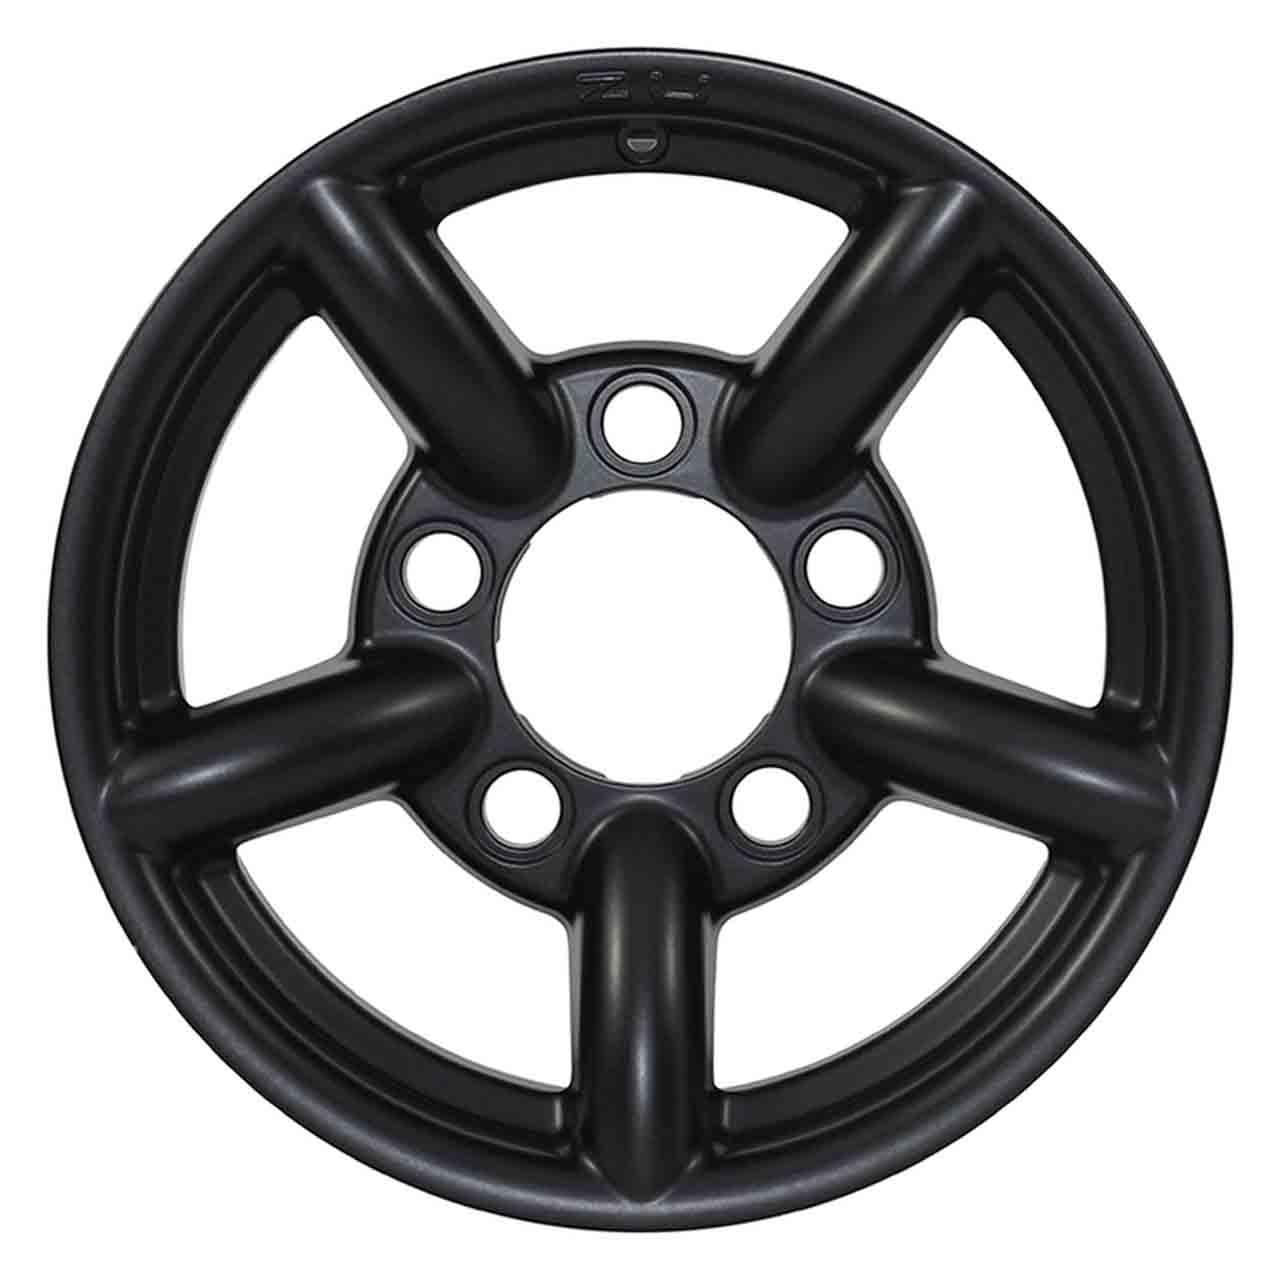 Defender Discovery 1 Range Rover Classic Ruota 16 X 7 Colore Nero Opaco GR2-03646